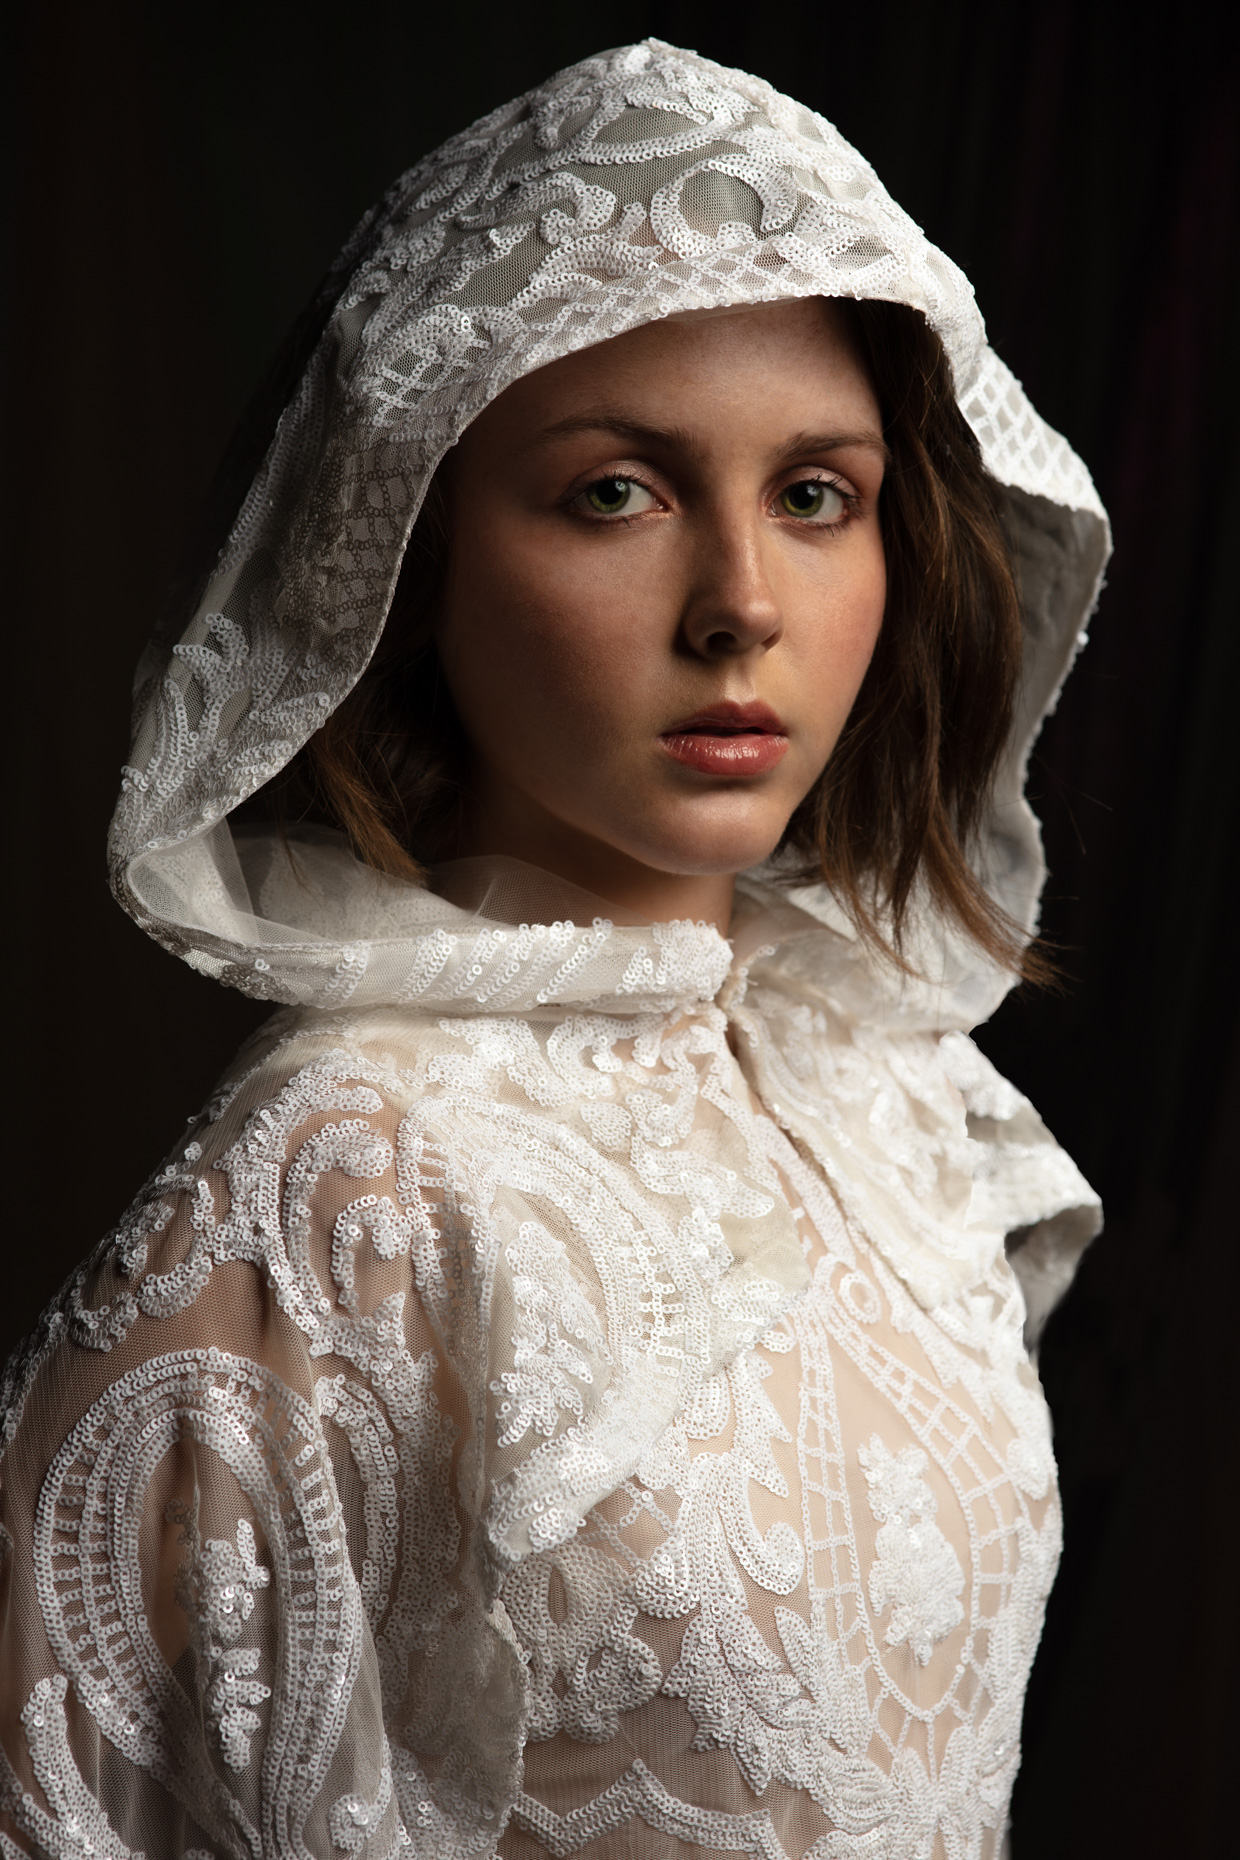 lace-wedding-gown-hood-nicholas-nguyen